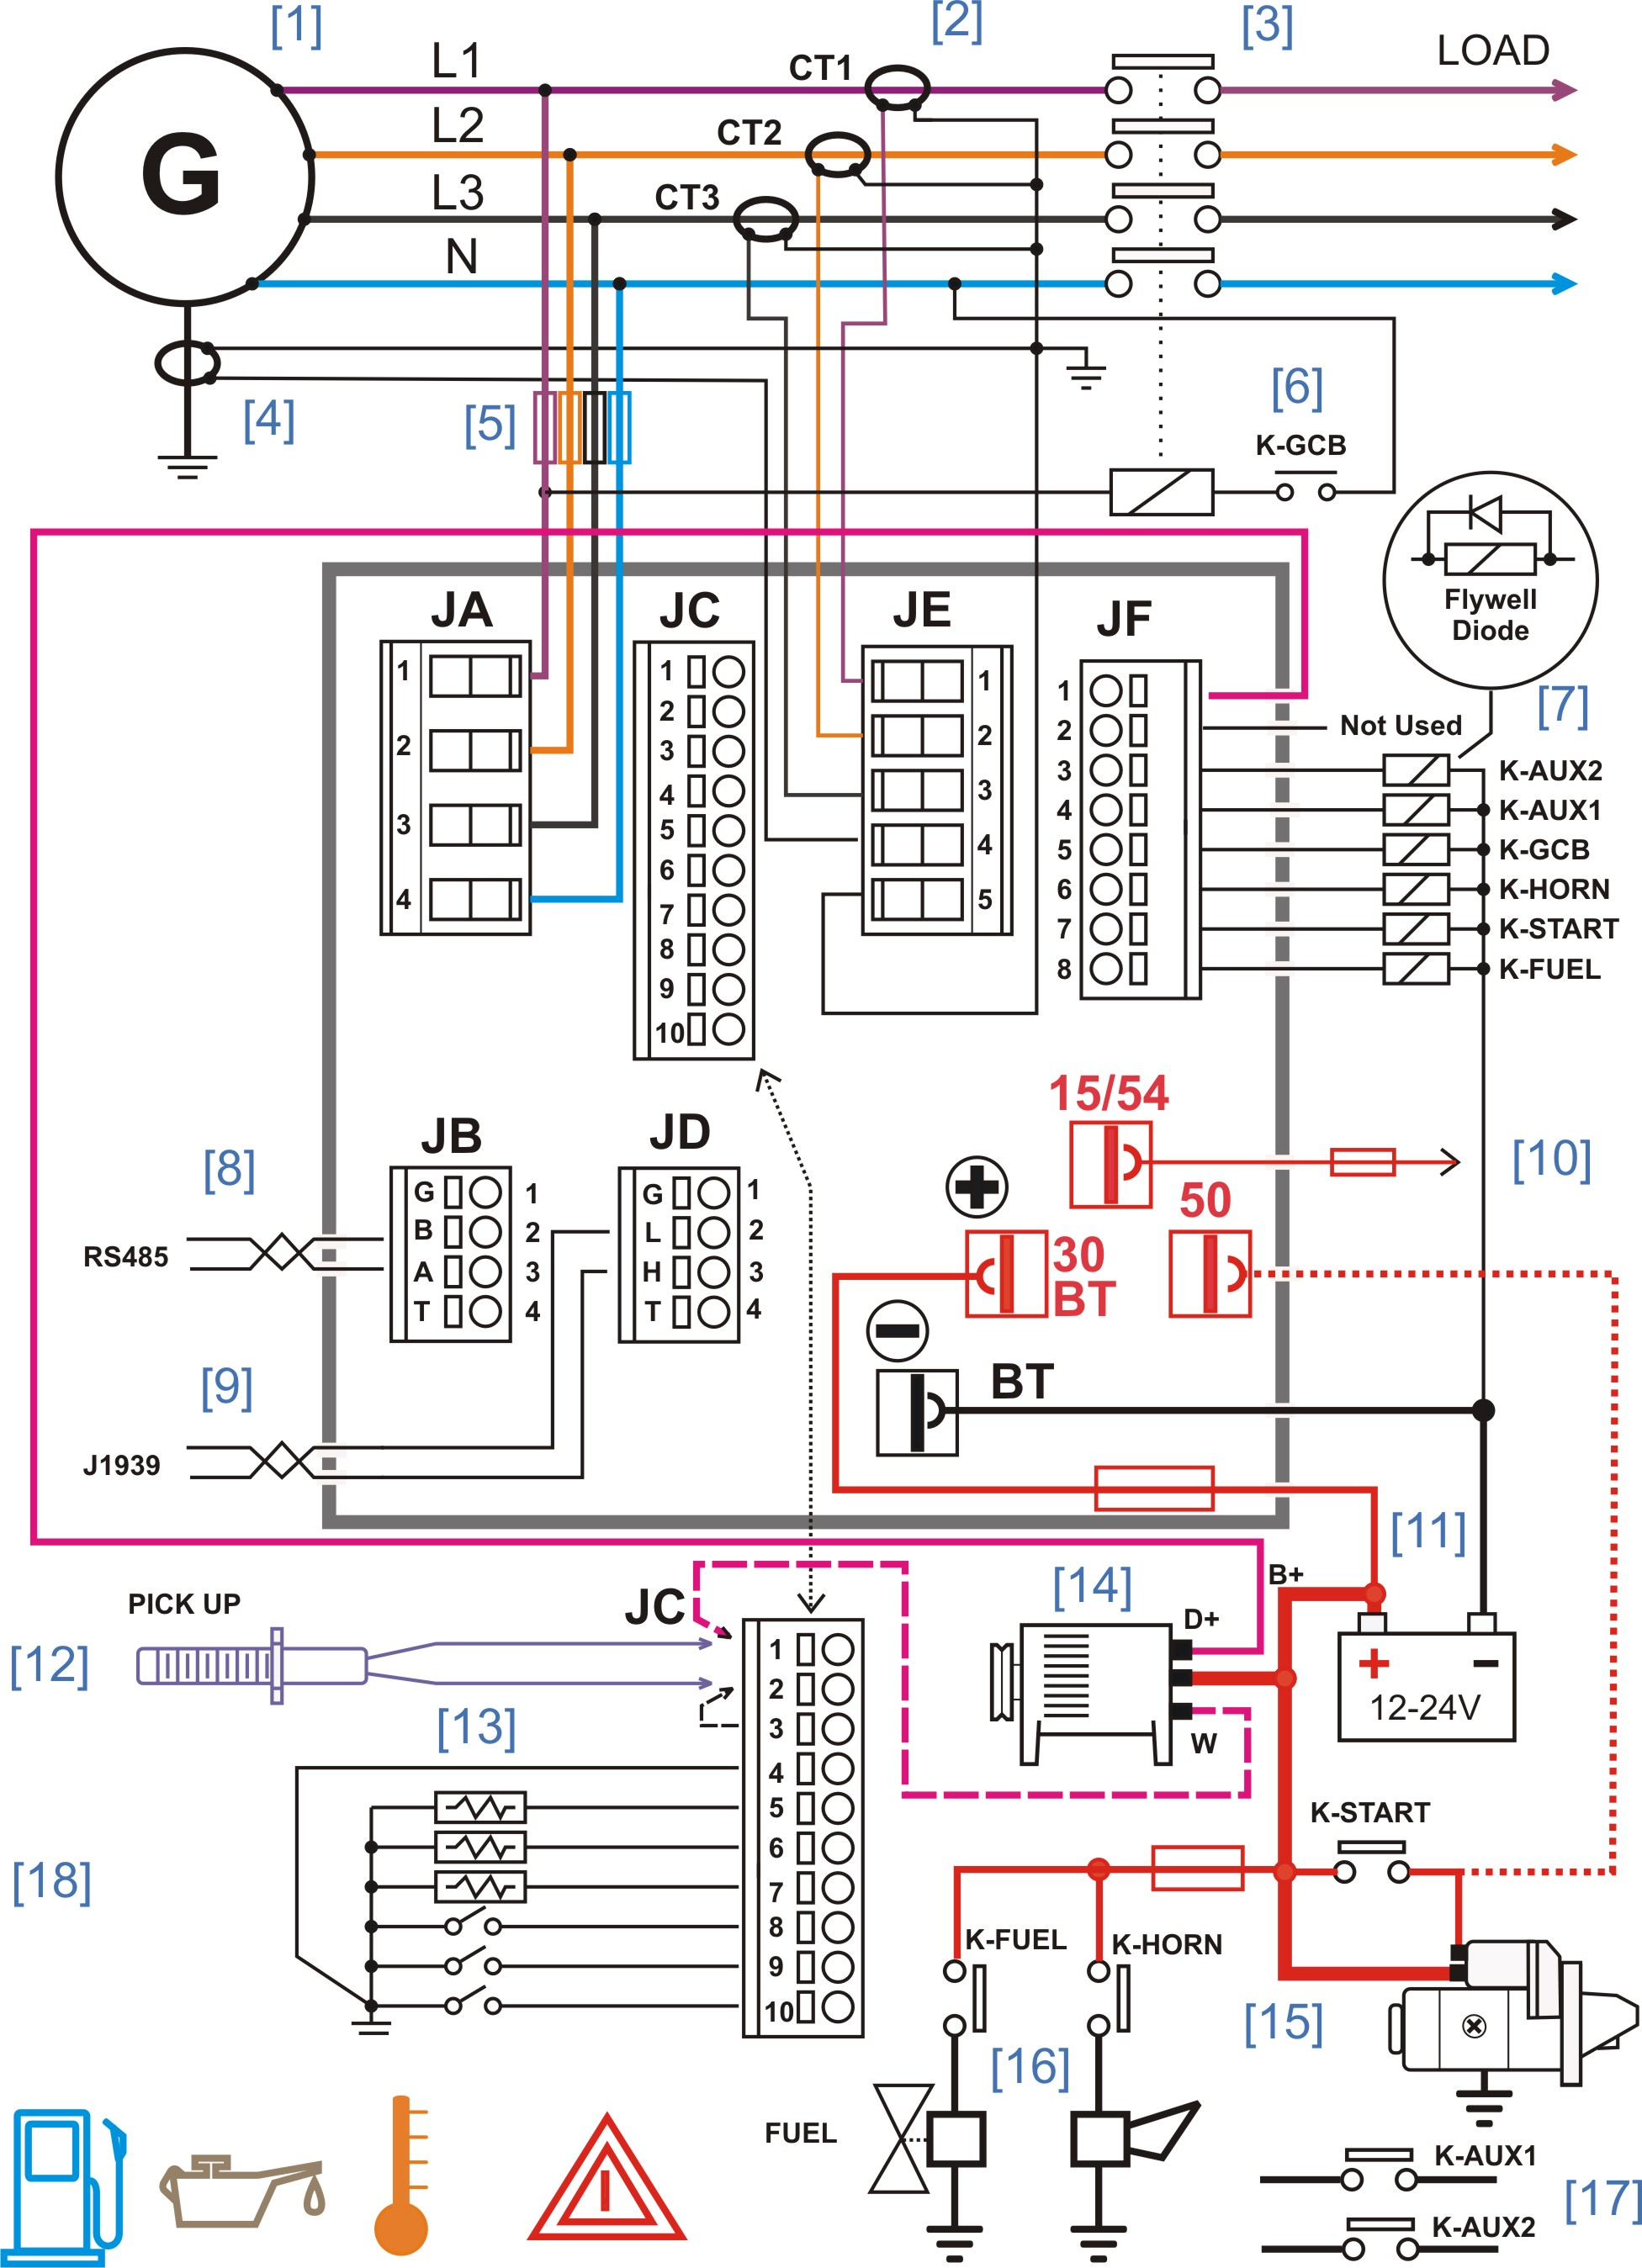 ht wiring diagrams simple wiring diagram ht wiring diagram simple wiring diagram home electrical wiring diagrams ht panel wiring diagram wiring diagrams